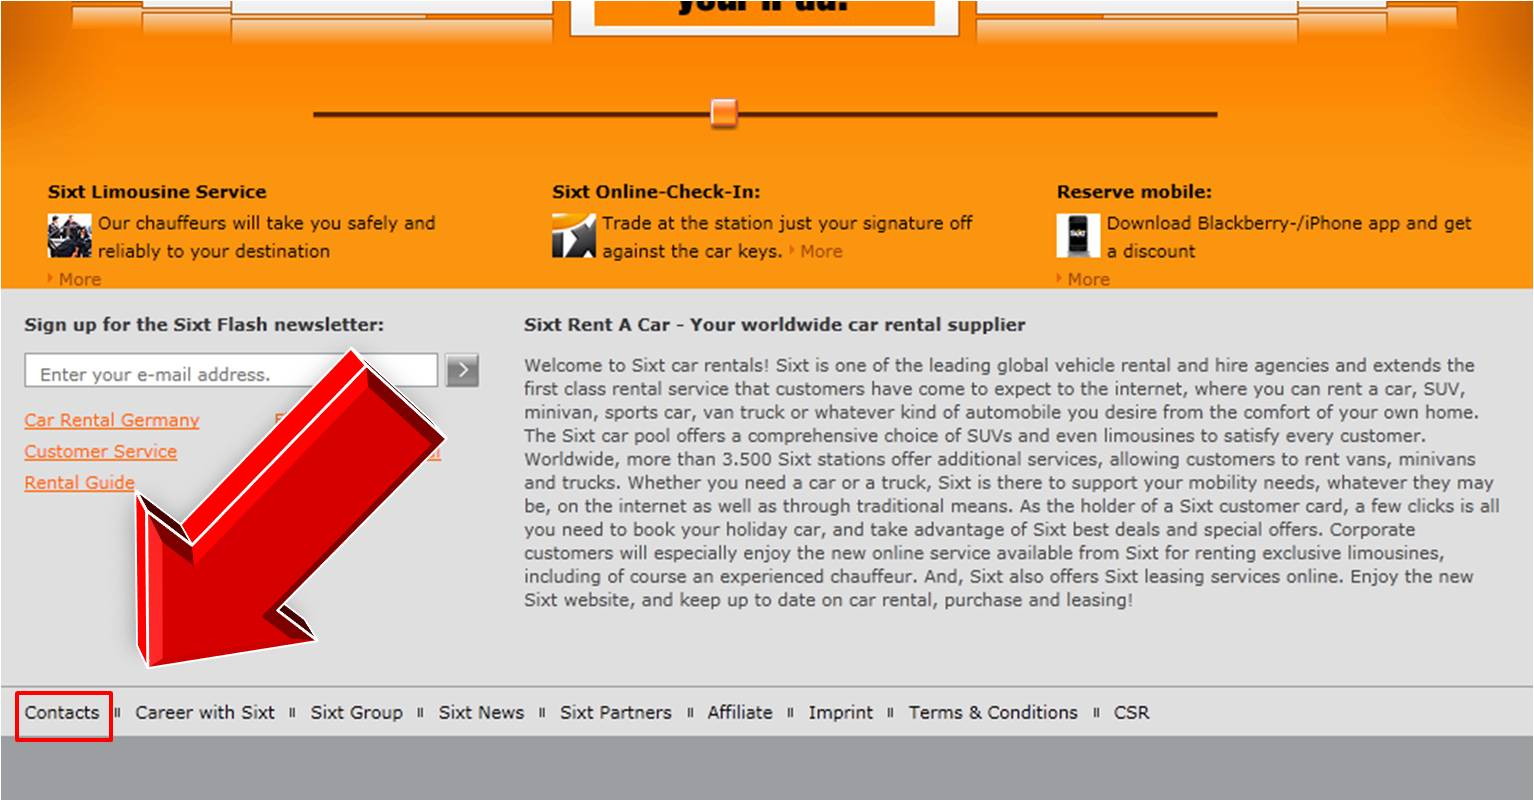 View Sixt Car Rental Deals How to Use Coupons and Codes. How to use Sixt Car Rental coupons and promo codes: Click on the shopping bag to see the summary of your order. Enter one of the promo codes below in the labelled field. Click APPLY to see your discount and continue checkout.